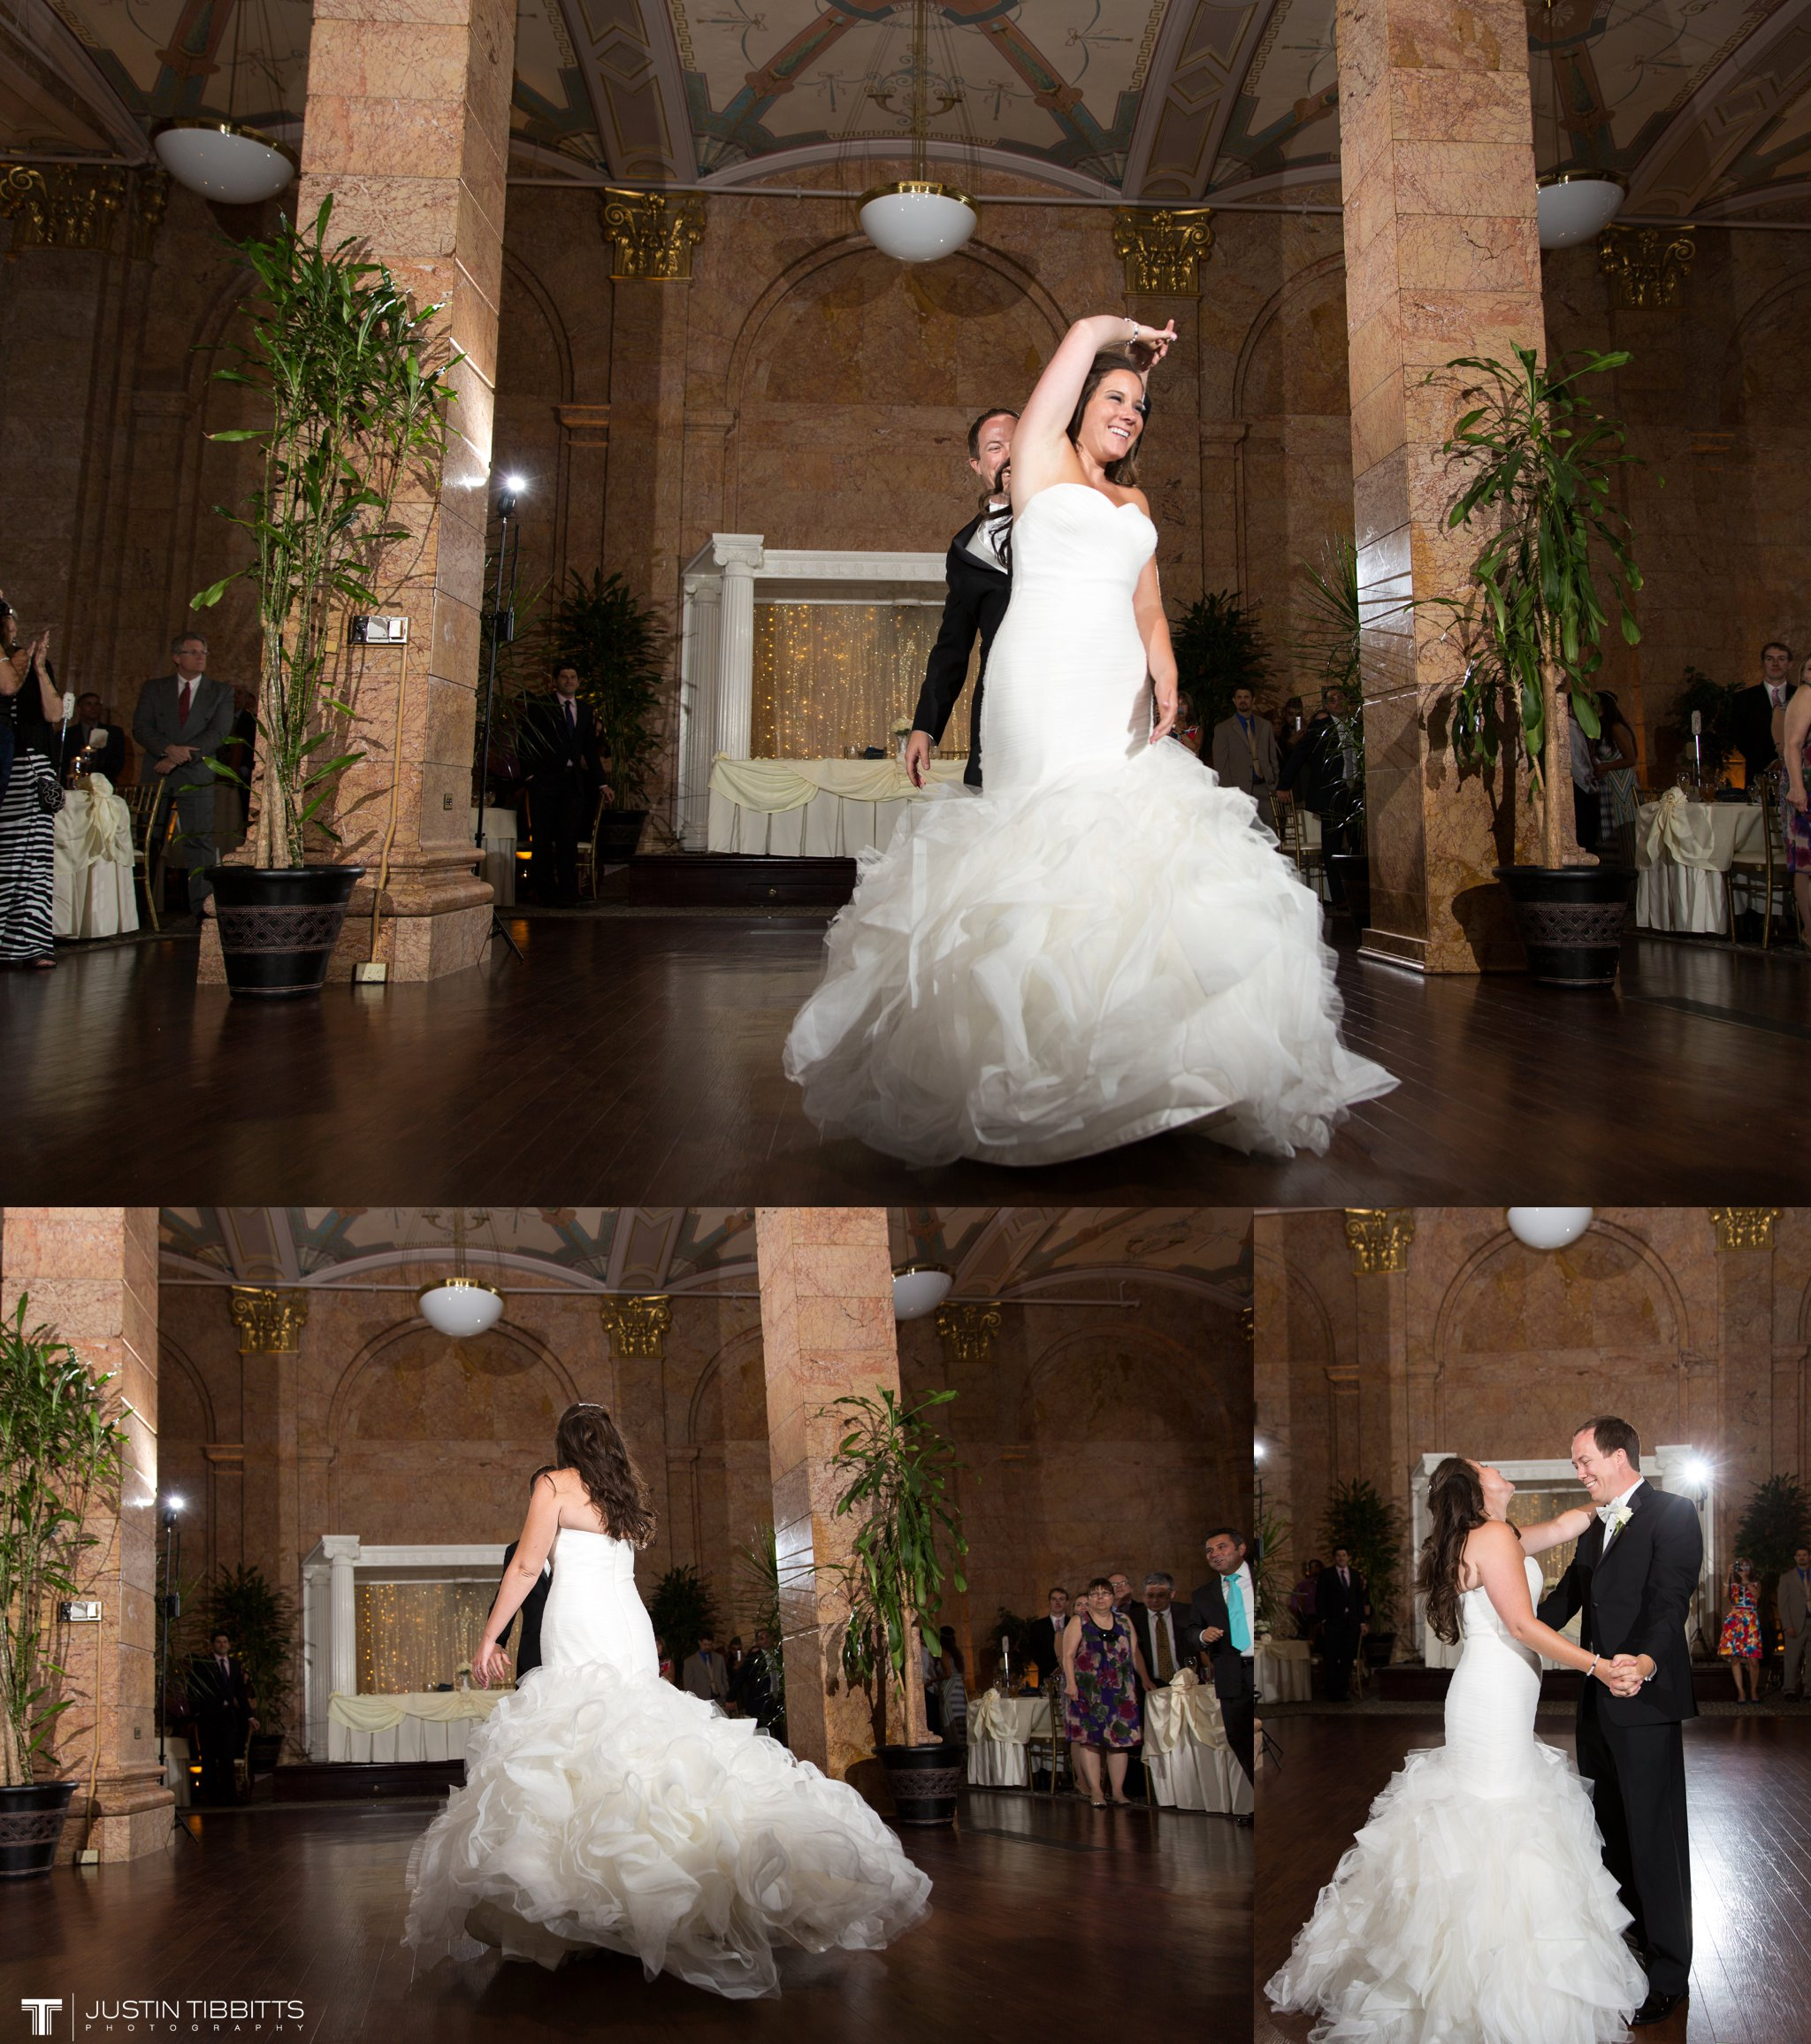 The State Room Albany, NY Wedding with Christian and Meg by Justin Tibbitts Photography_0140